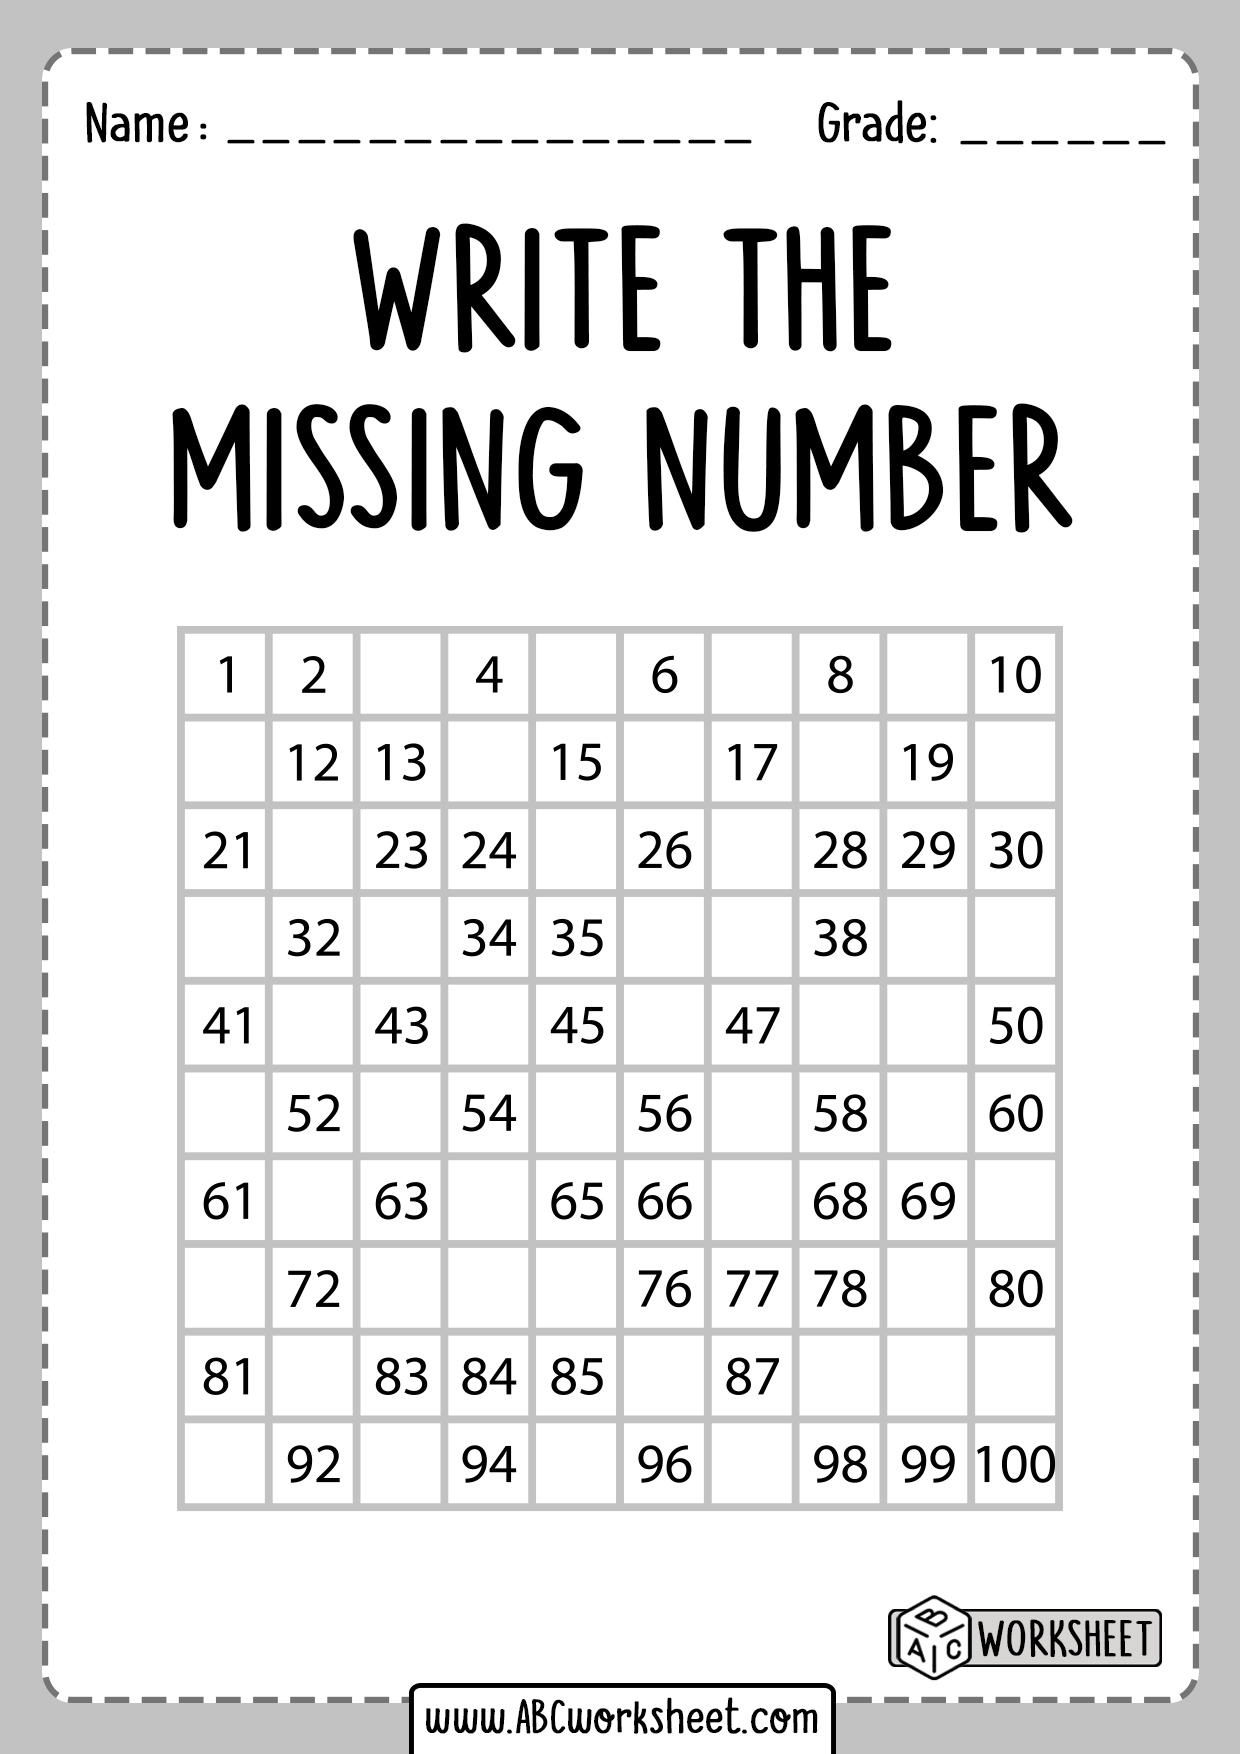 Write the Missing Number Worksheets